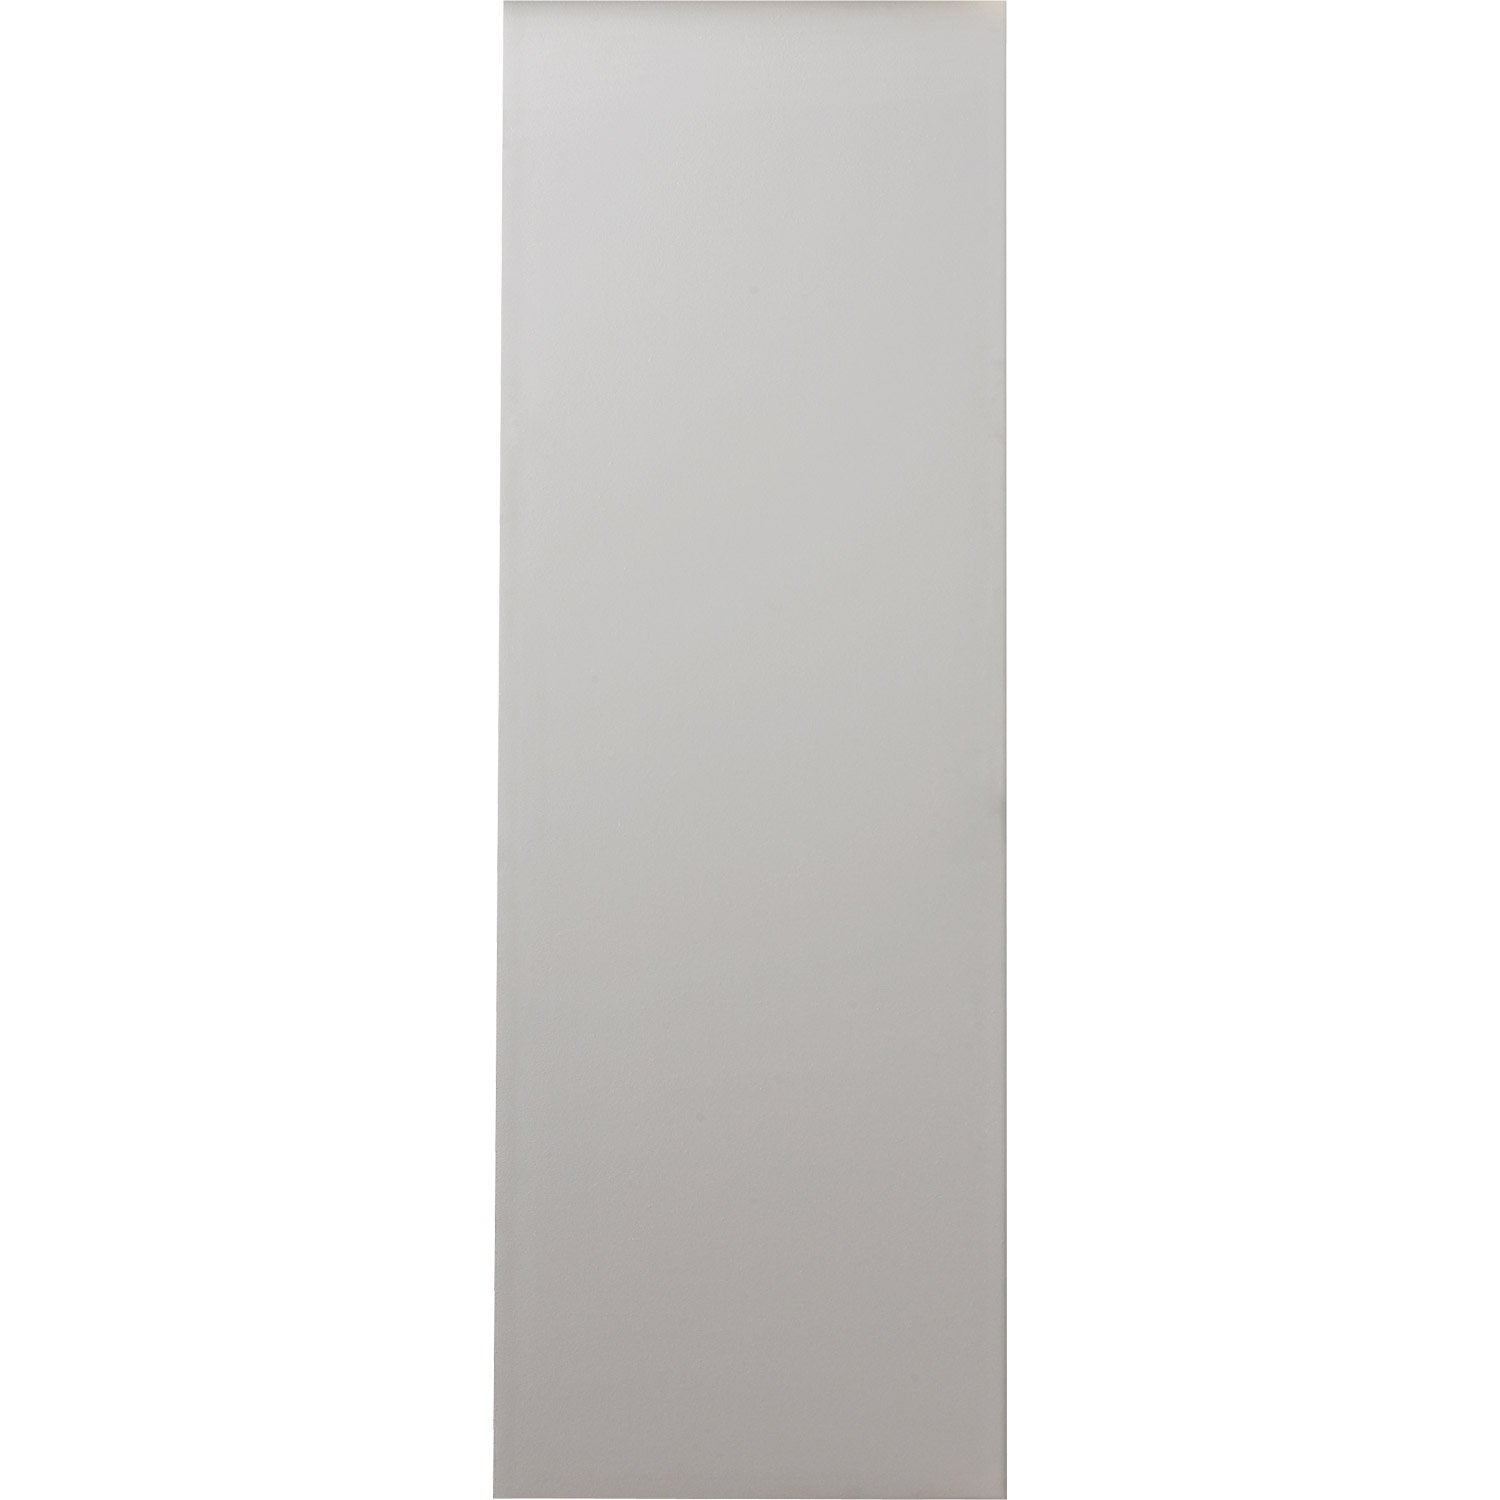 Porte coulissante sapin blanc 204 x 63 cm leroy merlin for Porte coulissante 63